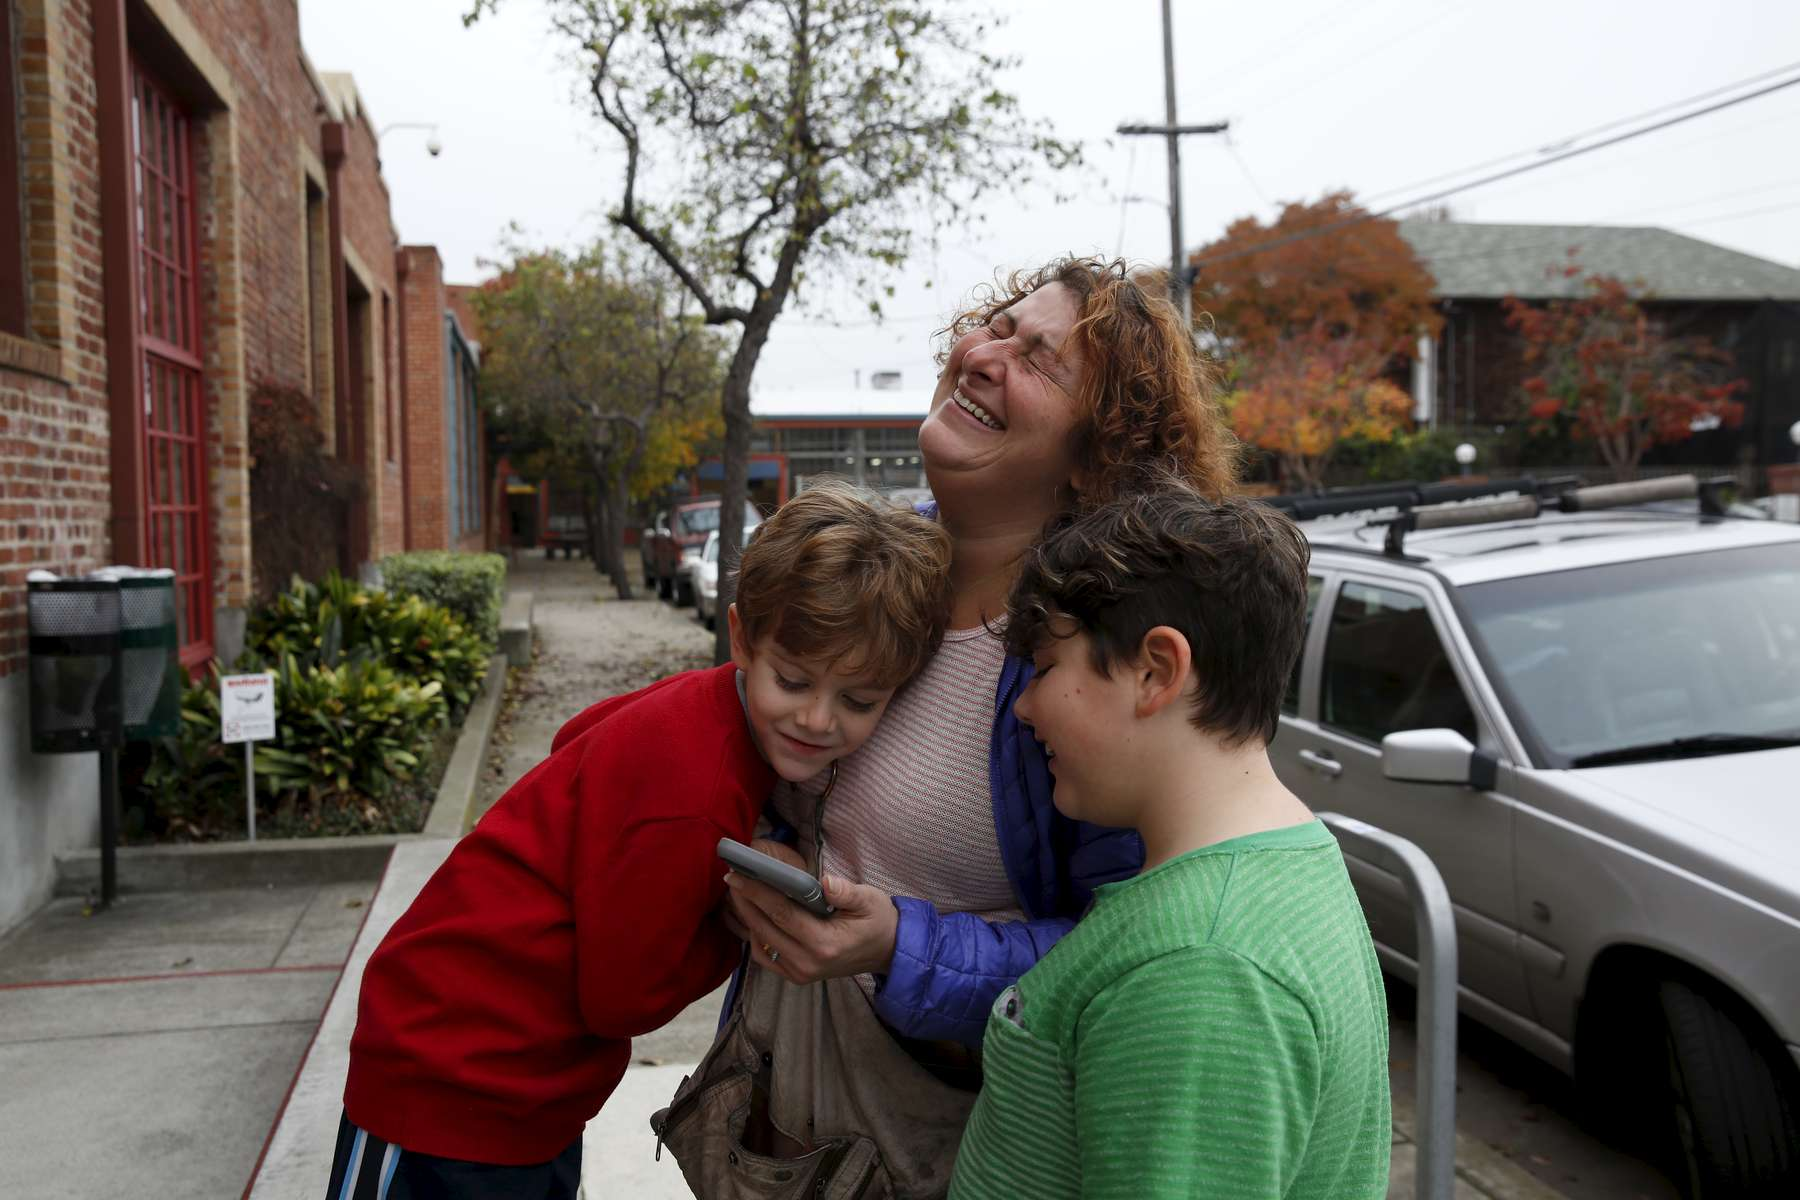 Sara cracks up with her children Charley, 4, left, and James Kaplan, 9, before the two of them went into their play-therapy sessions Dec. 13, 2016 in Berkeley, Calif. Since the reporting of this story, Charley has been living as a girl. She is wearing dresses, growing her hair out and has taken a more feminine name.